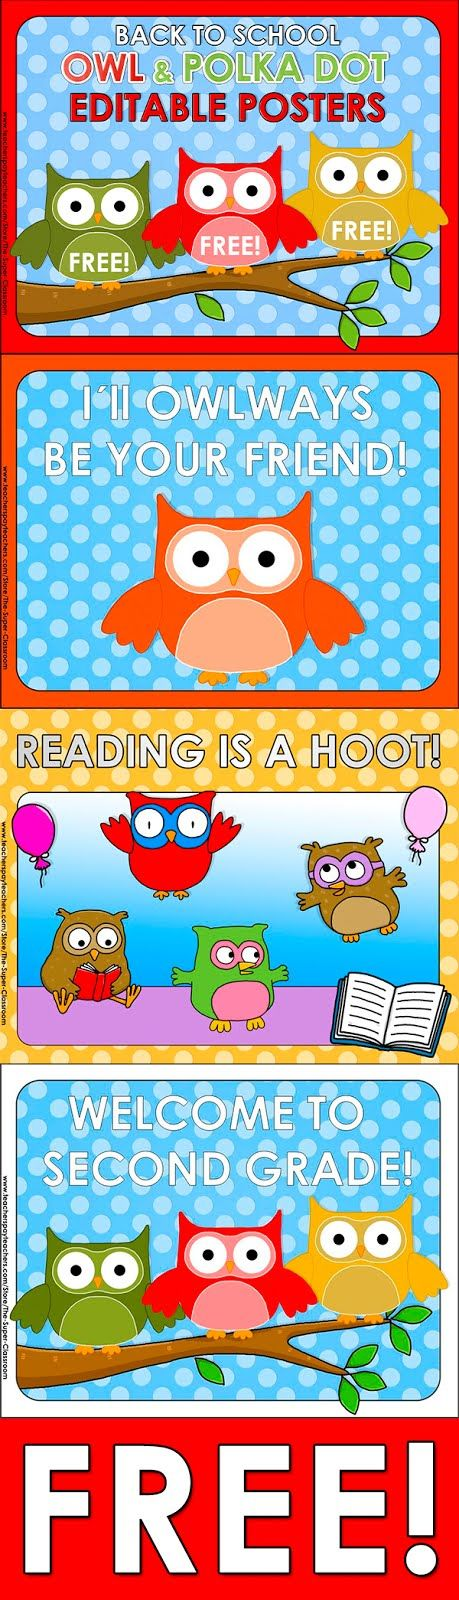 Owl and Polka Dot FREE POSTERS!   Click hereto get 3 FREE posters for your  OWL & CHEVRON themed classroom!